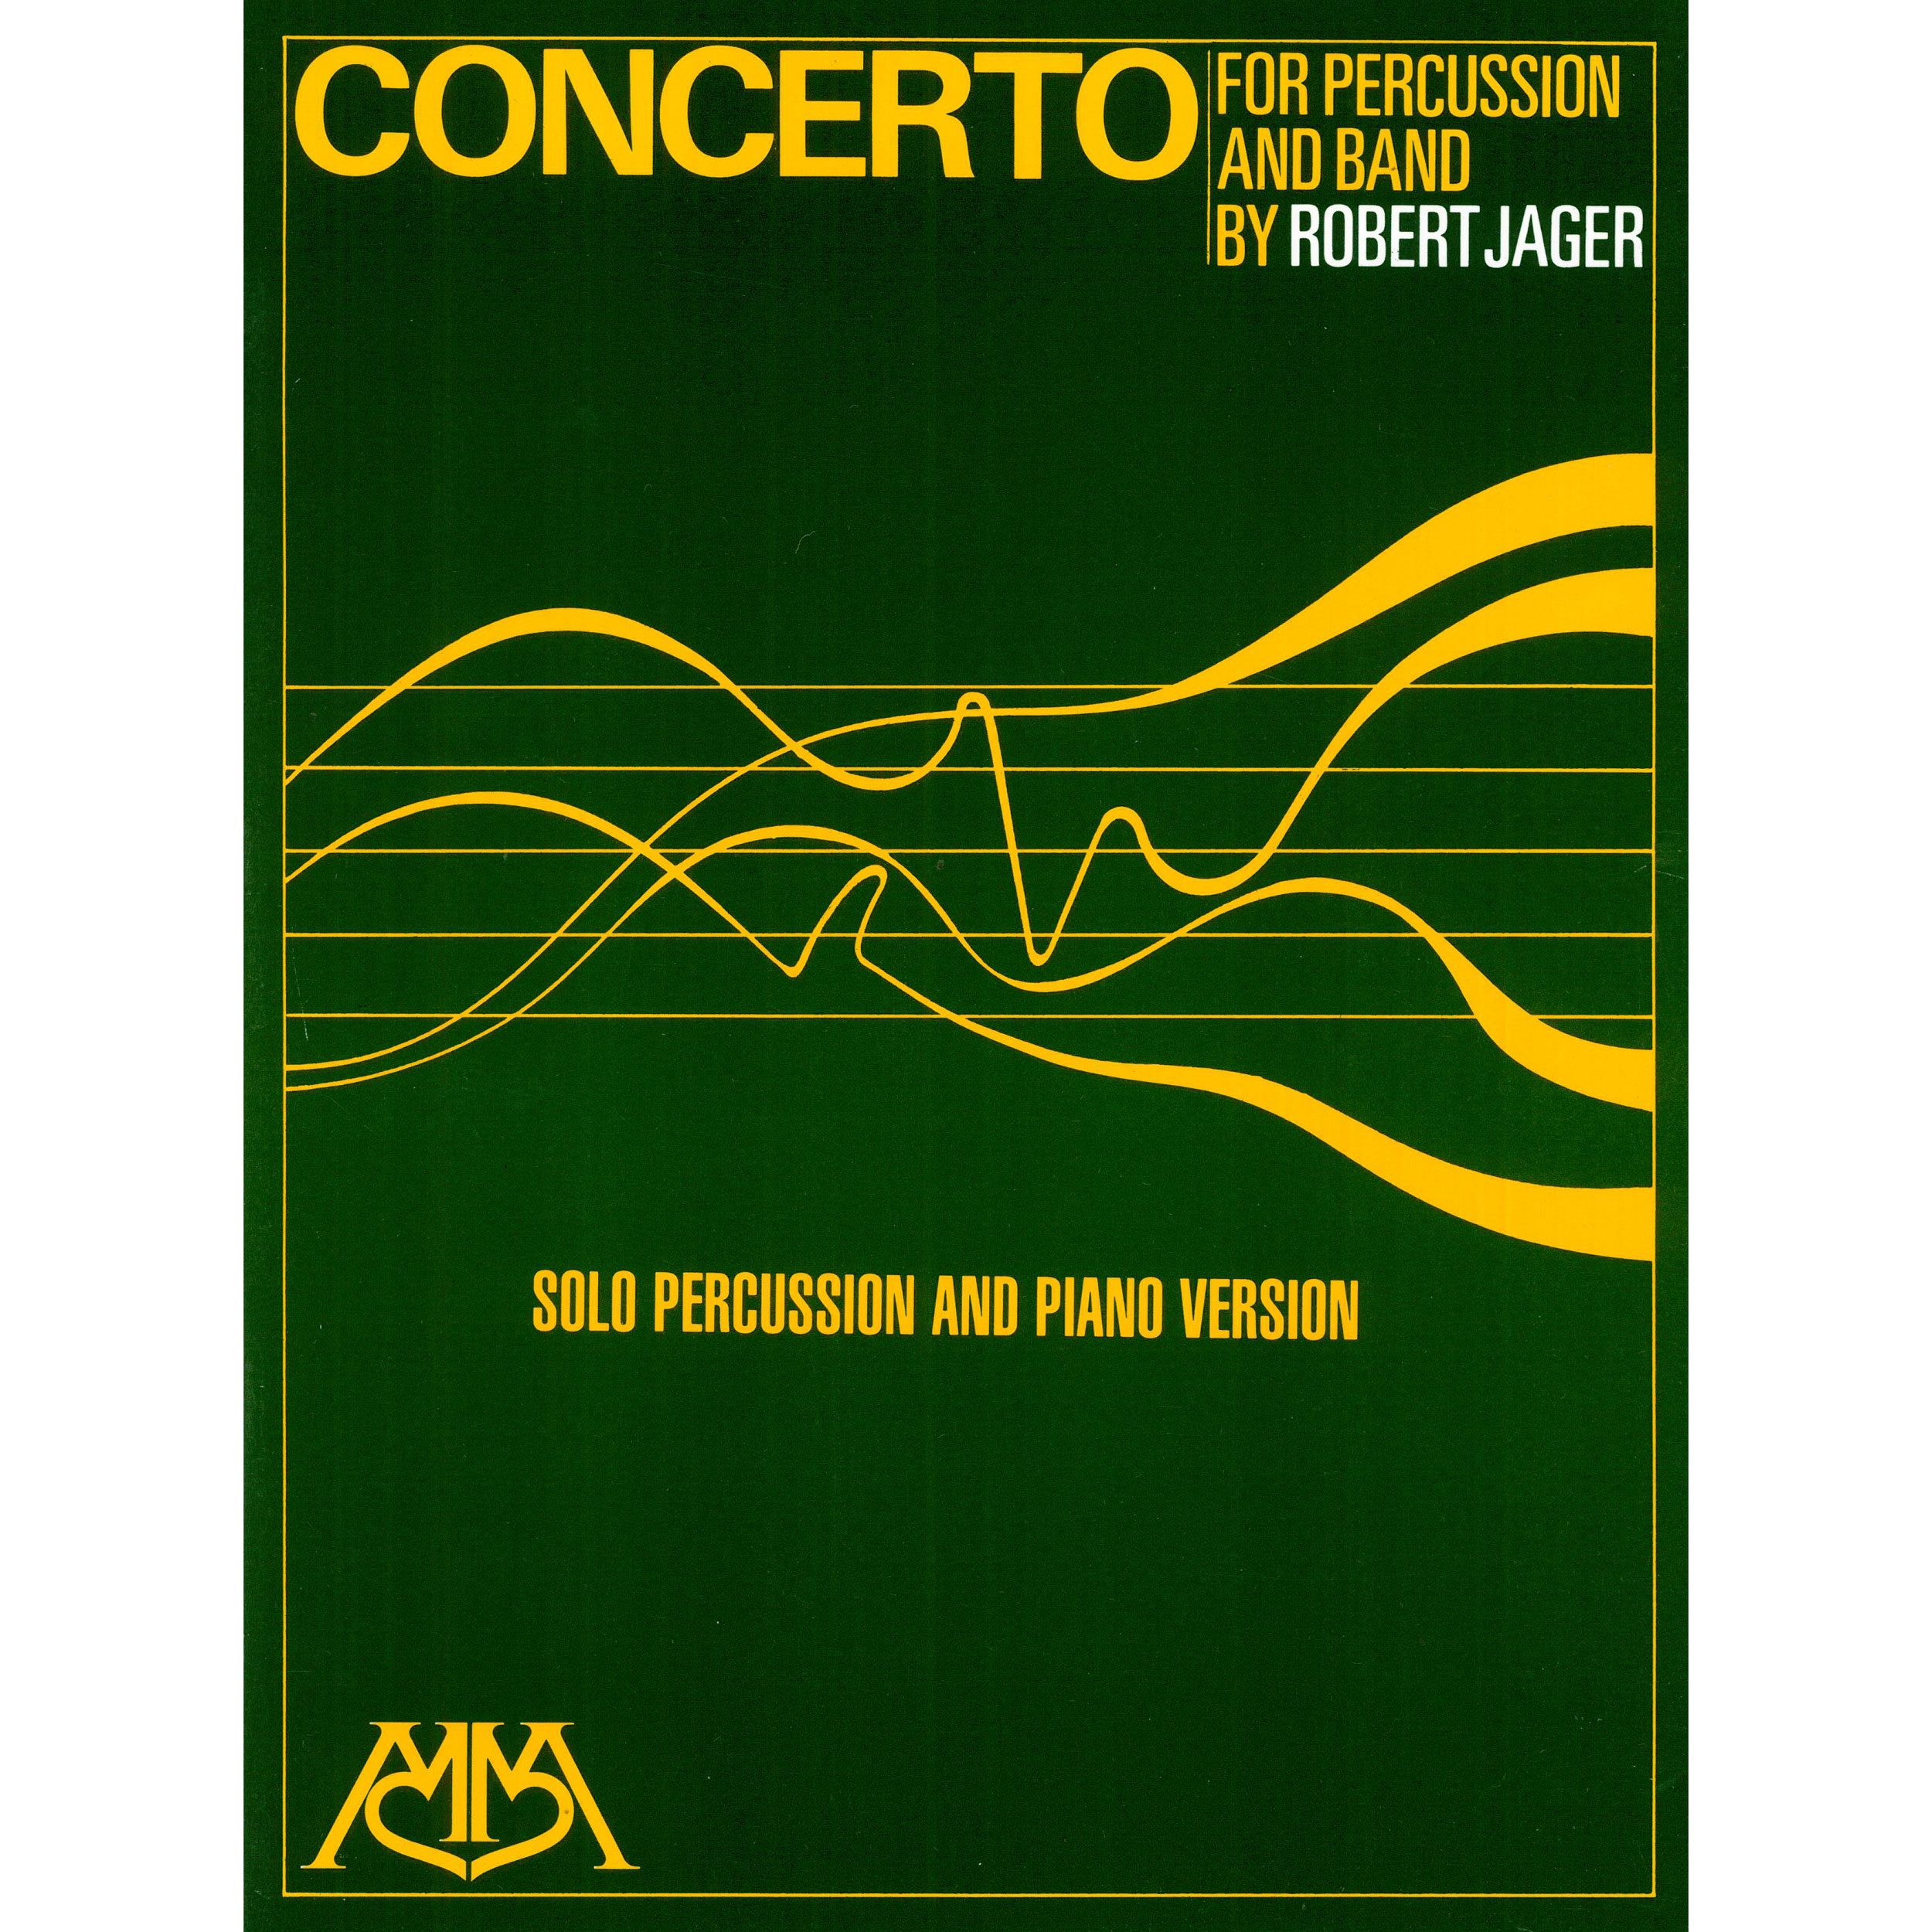 Concerto for Percussion and Band (Piano Reduction) by Robert Jager